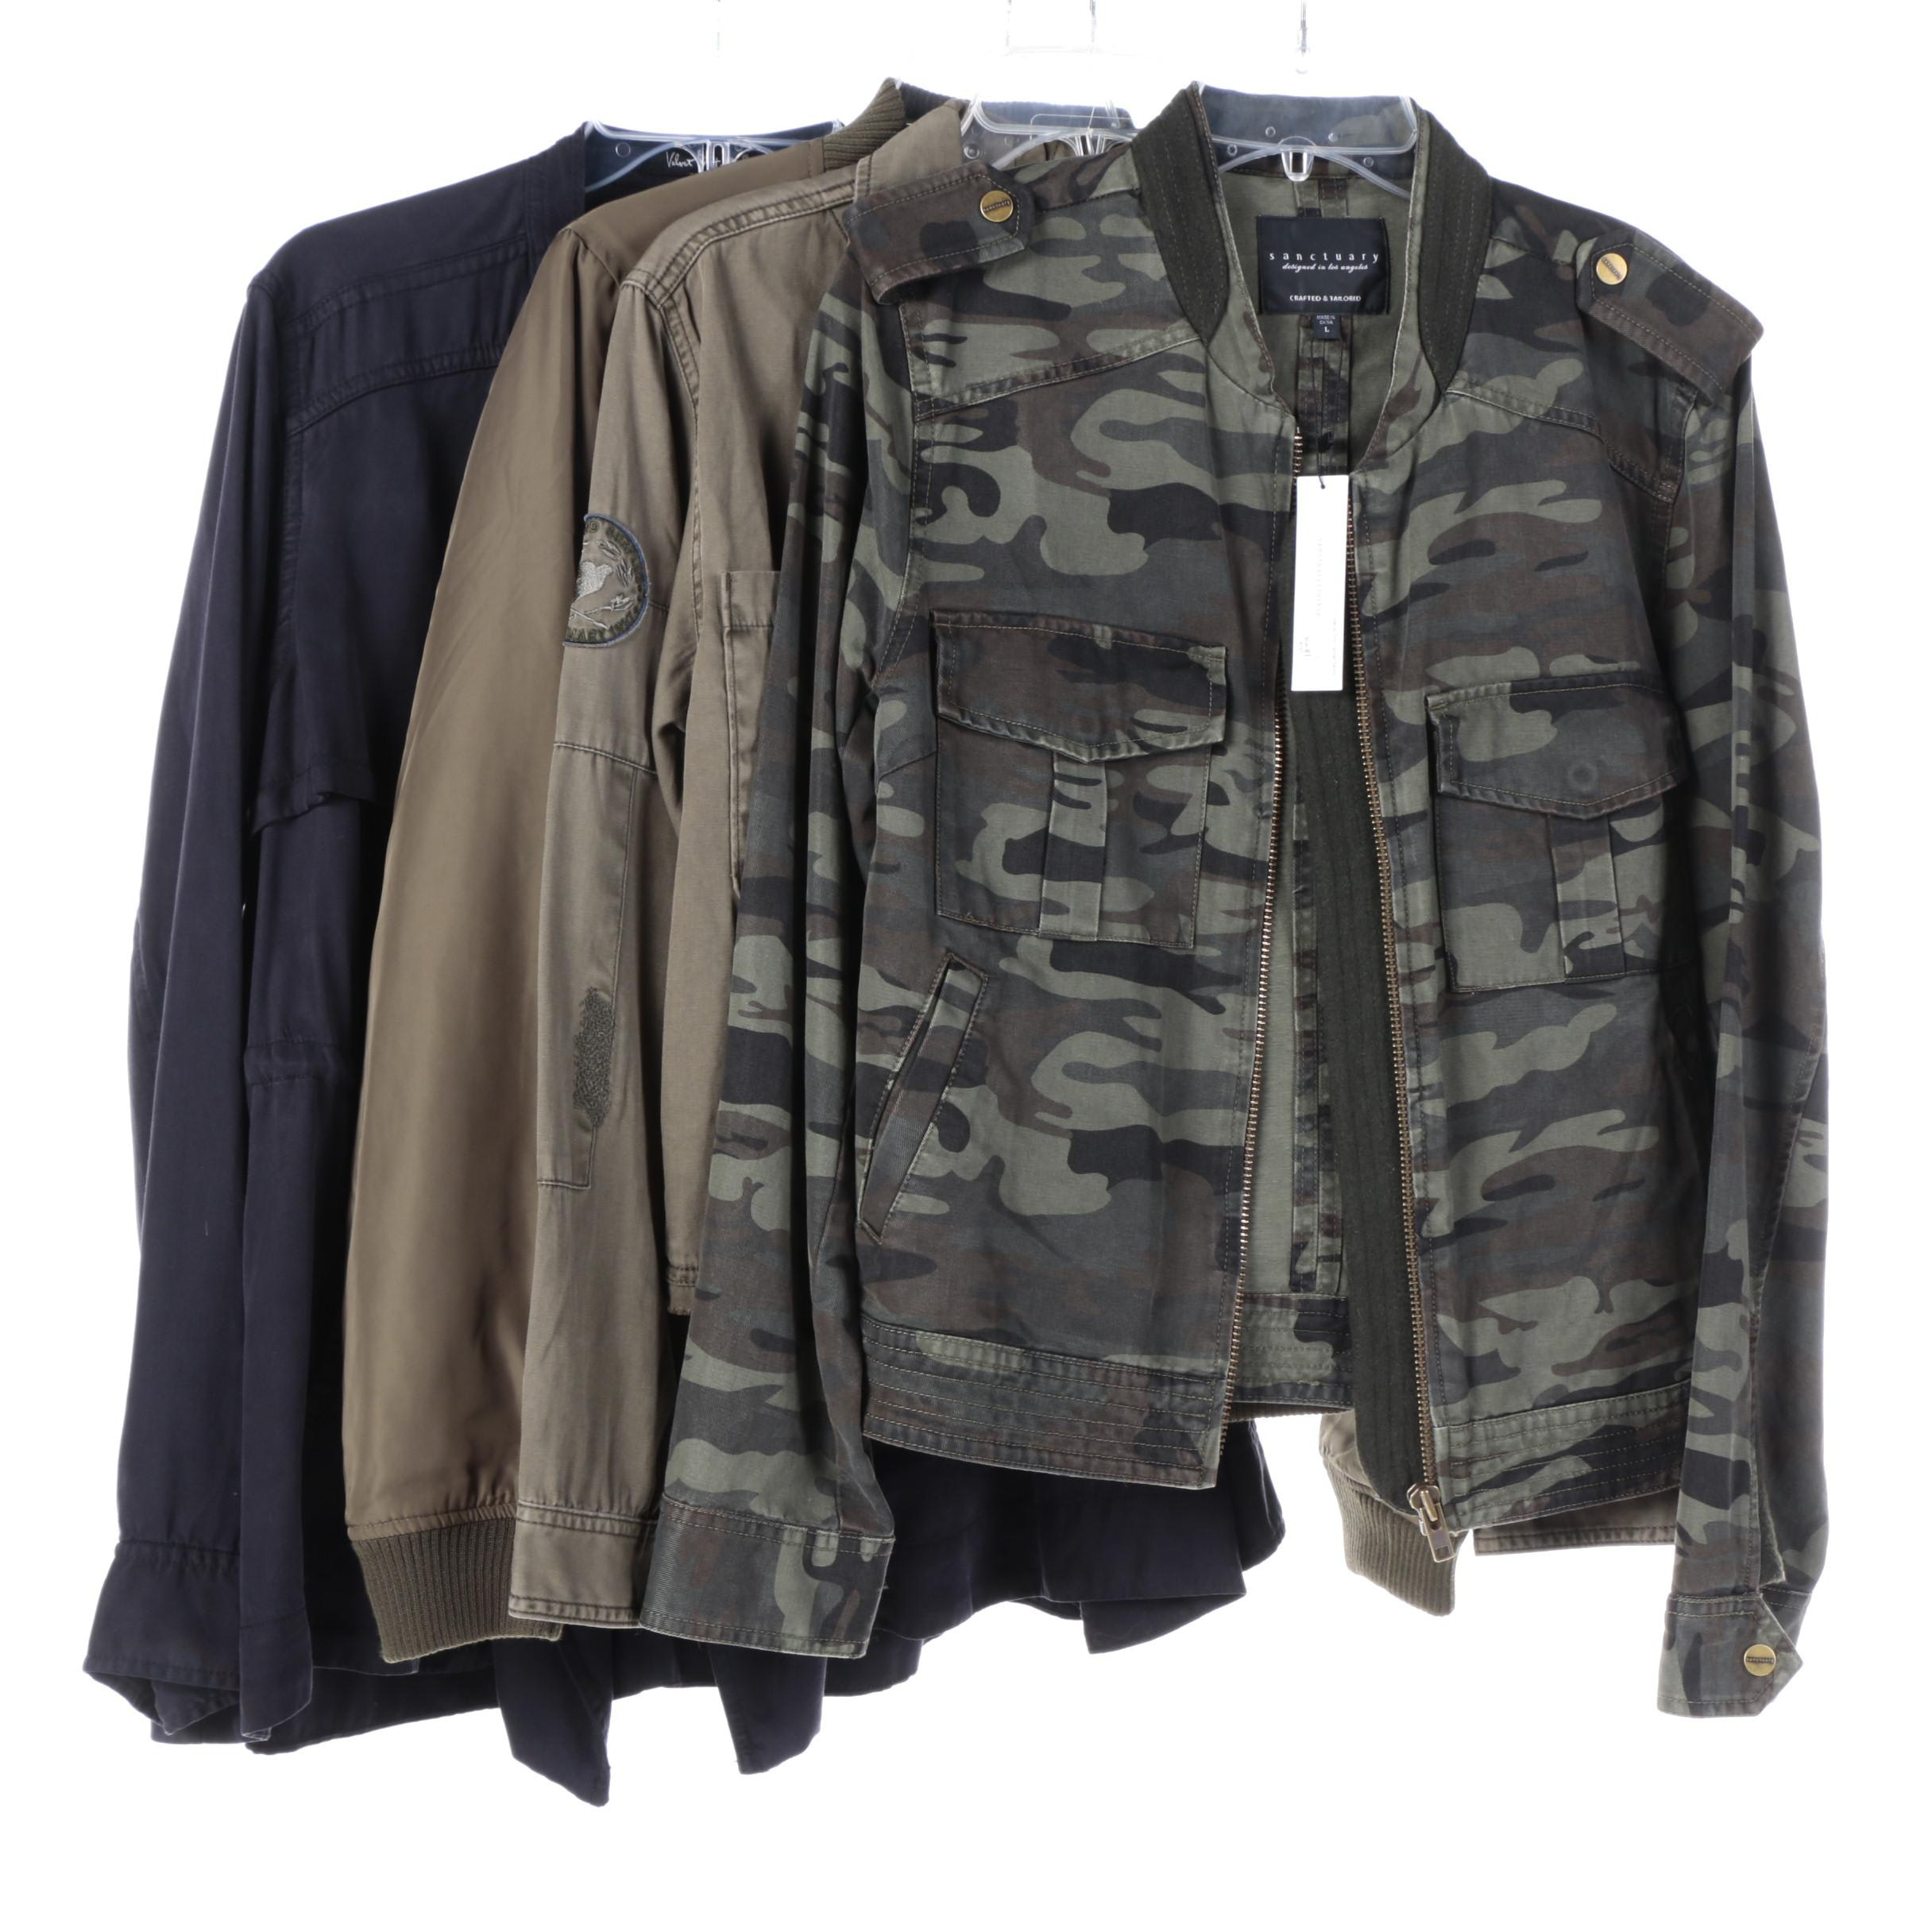 Women's Casual Cotton Jackets by Sanctuary and Velvet Heart